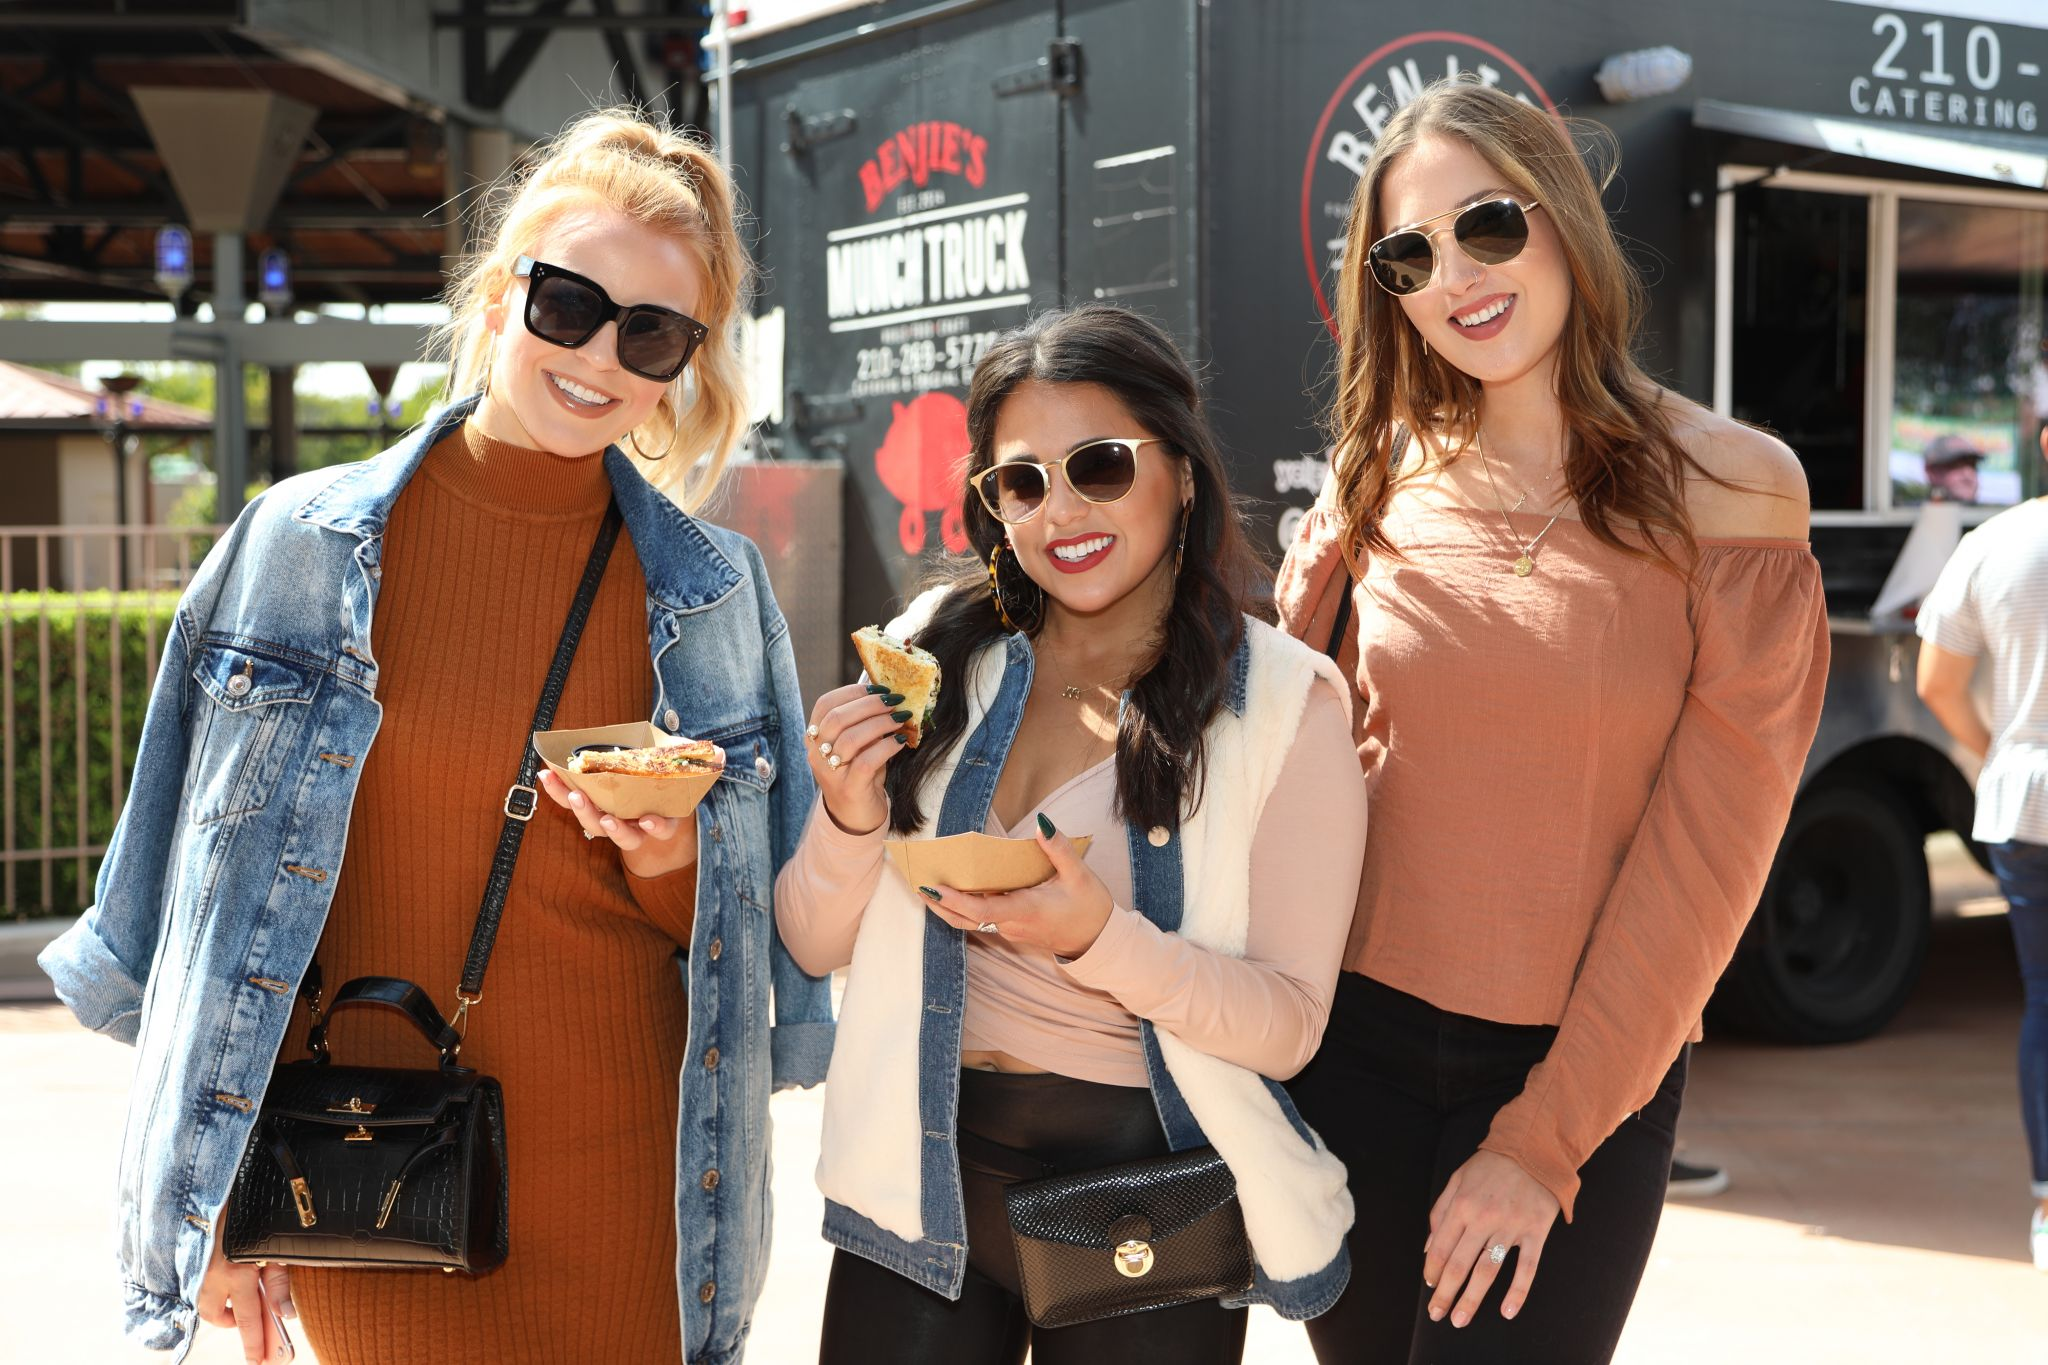 Photos: San Antonians enjoy plenty of cheesy goodness at the Grilled Cheese Fest